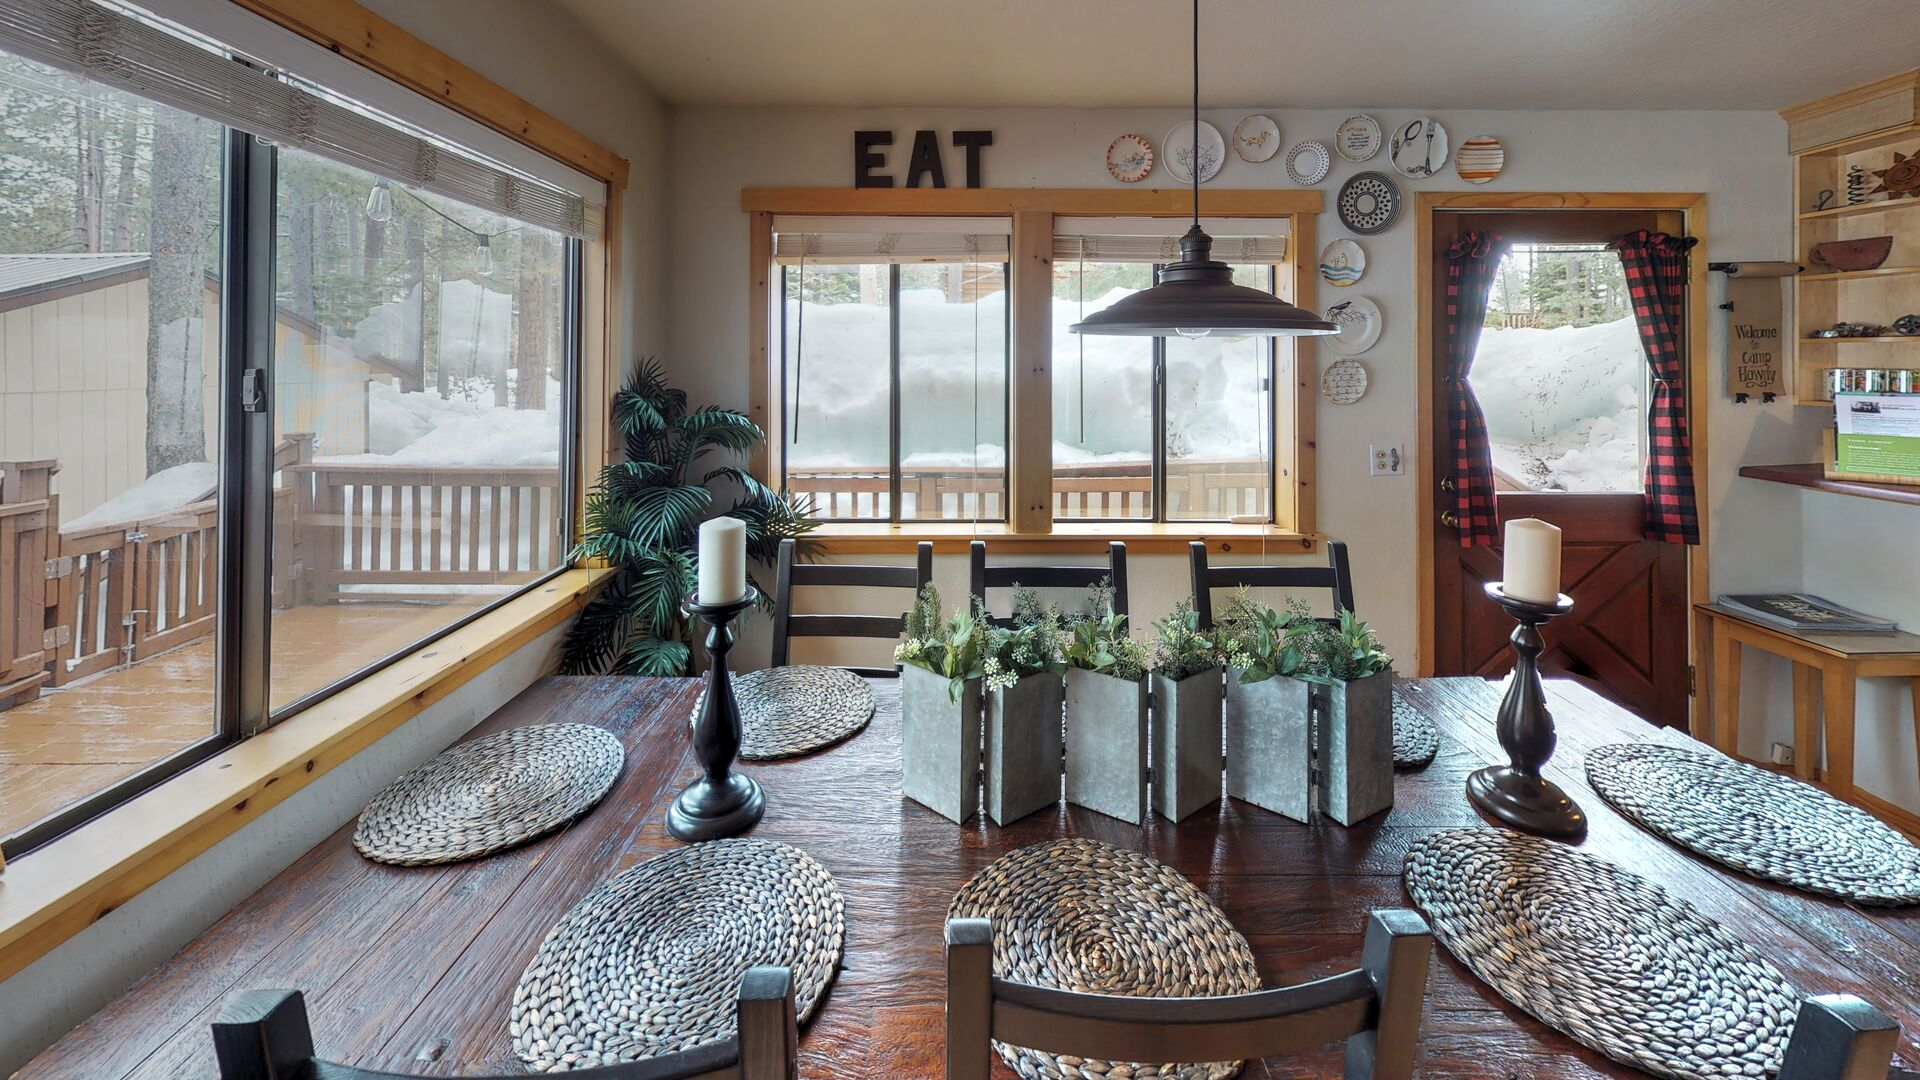 Dining Table with Place Settings in Camp Howdy Property